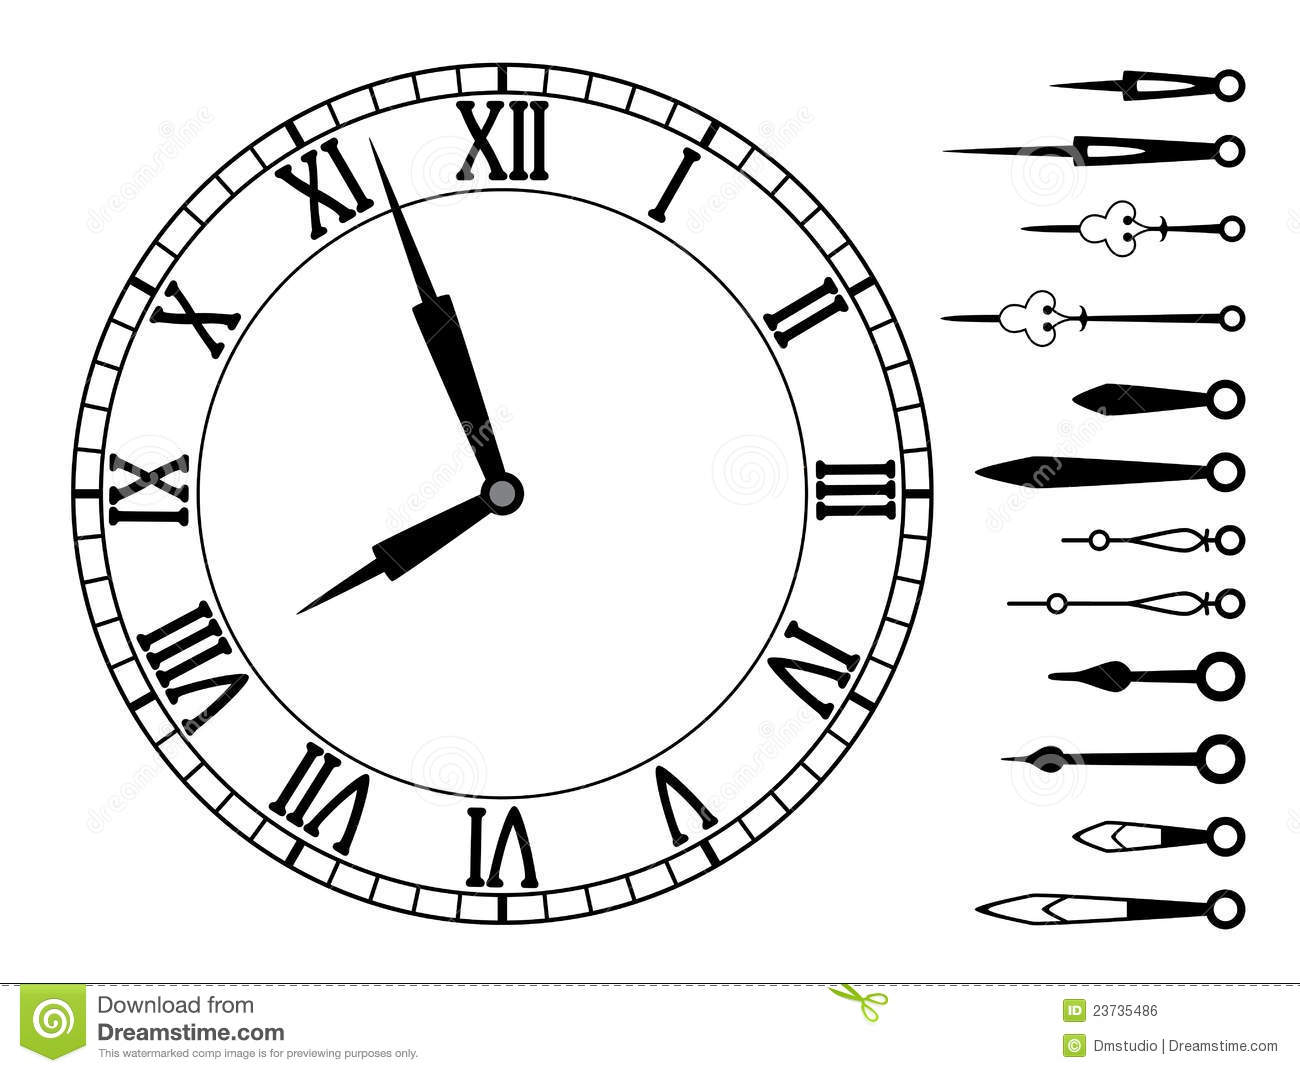 worksheet Clock Template With Hands vintage clock face template royalty free stock photography image vector and set of hands image